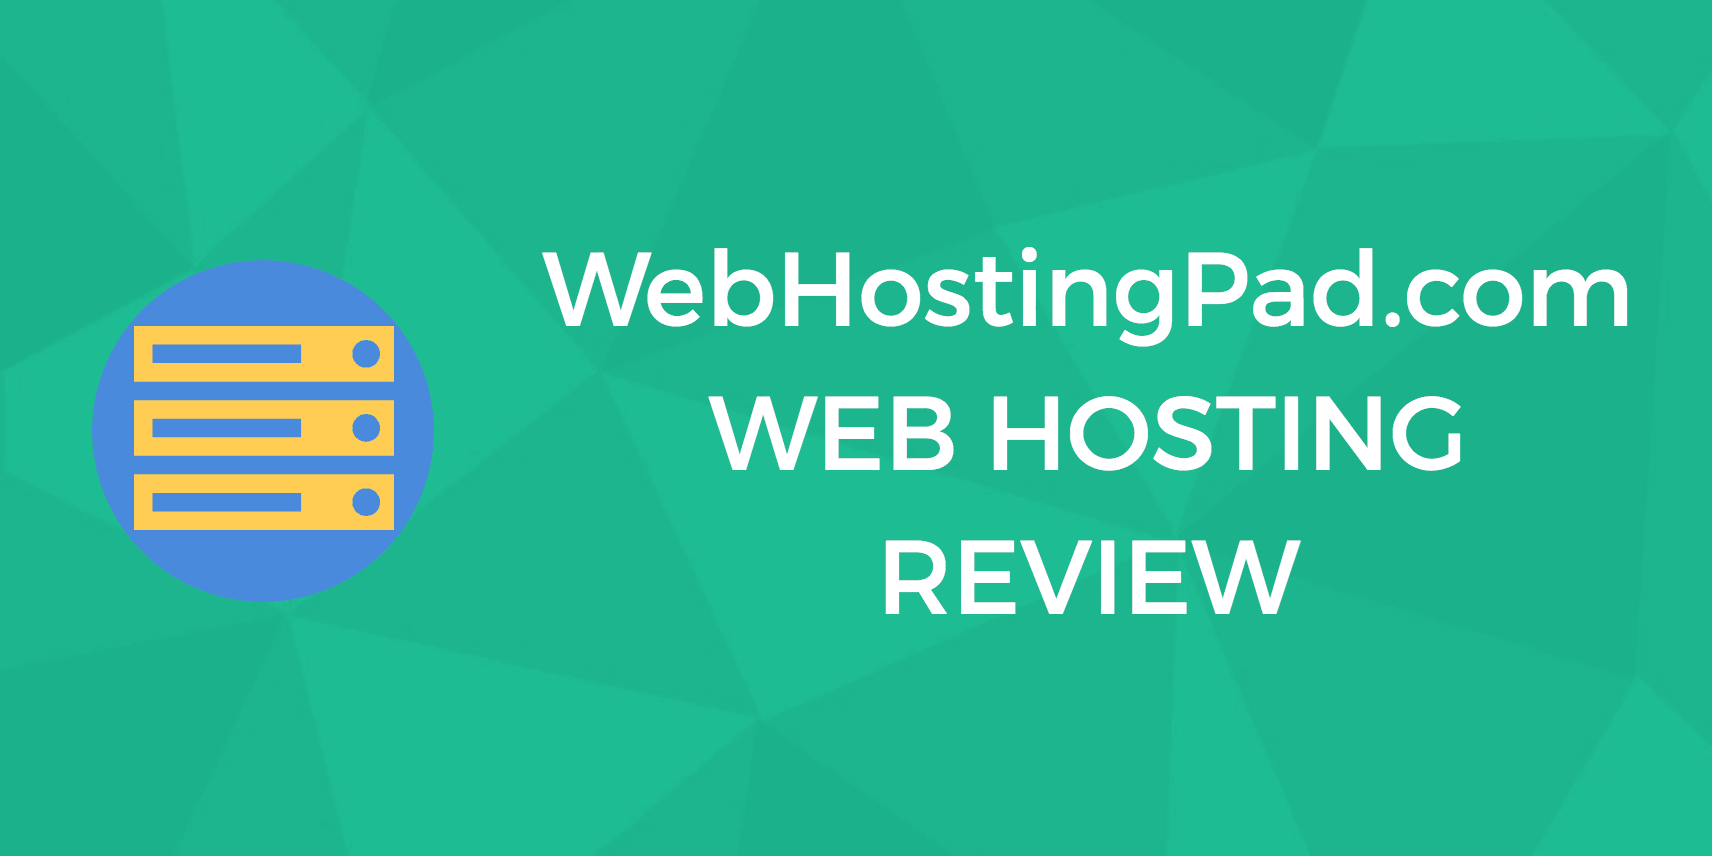 WebHostingPad: What's to Like and What's Not